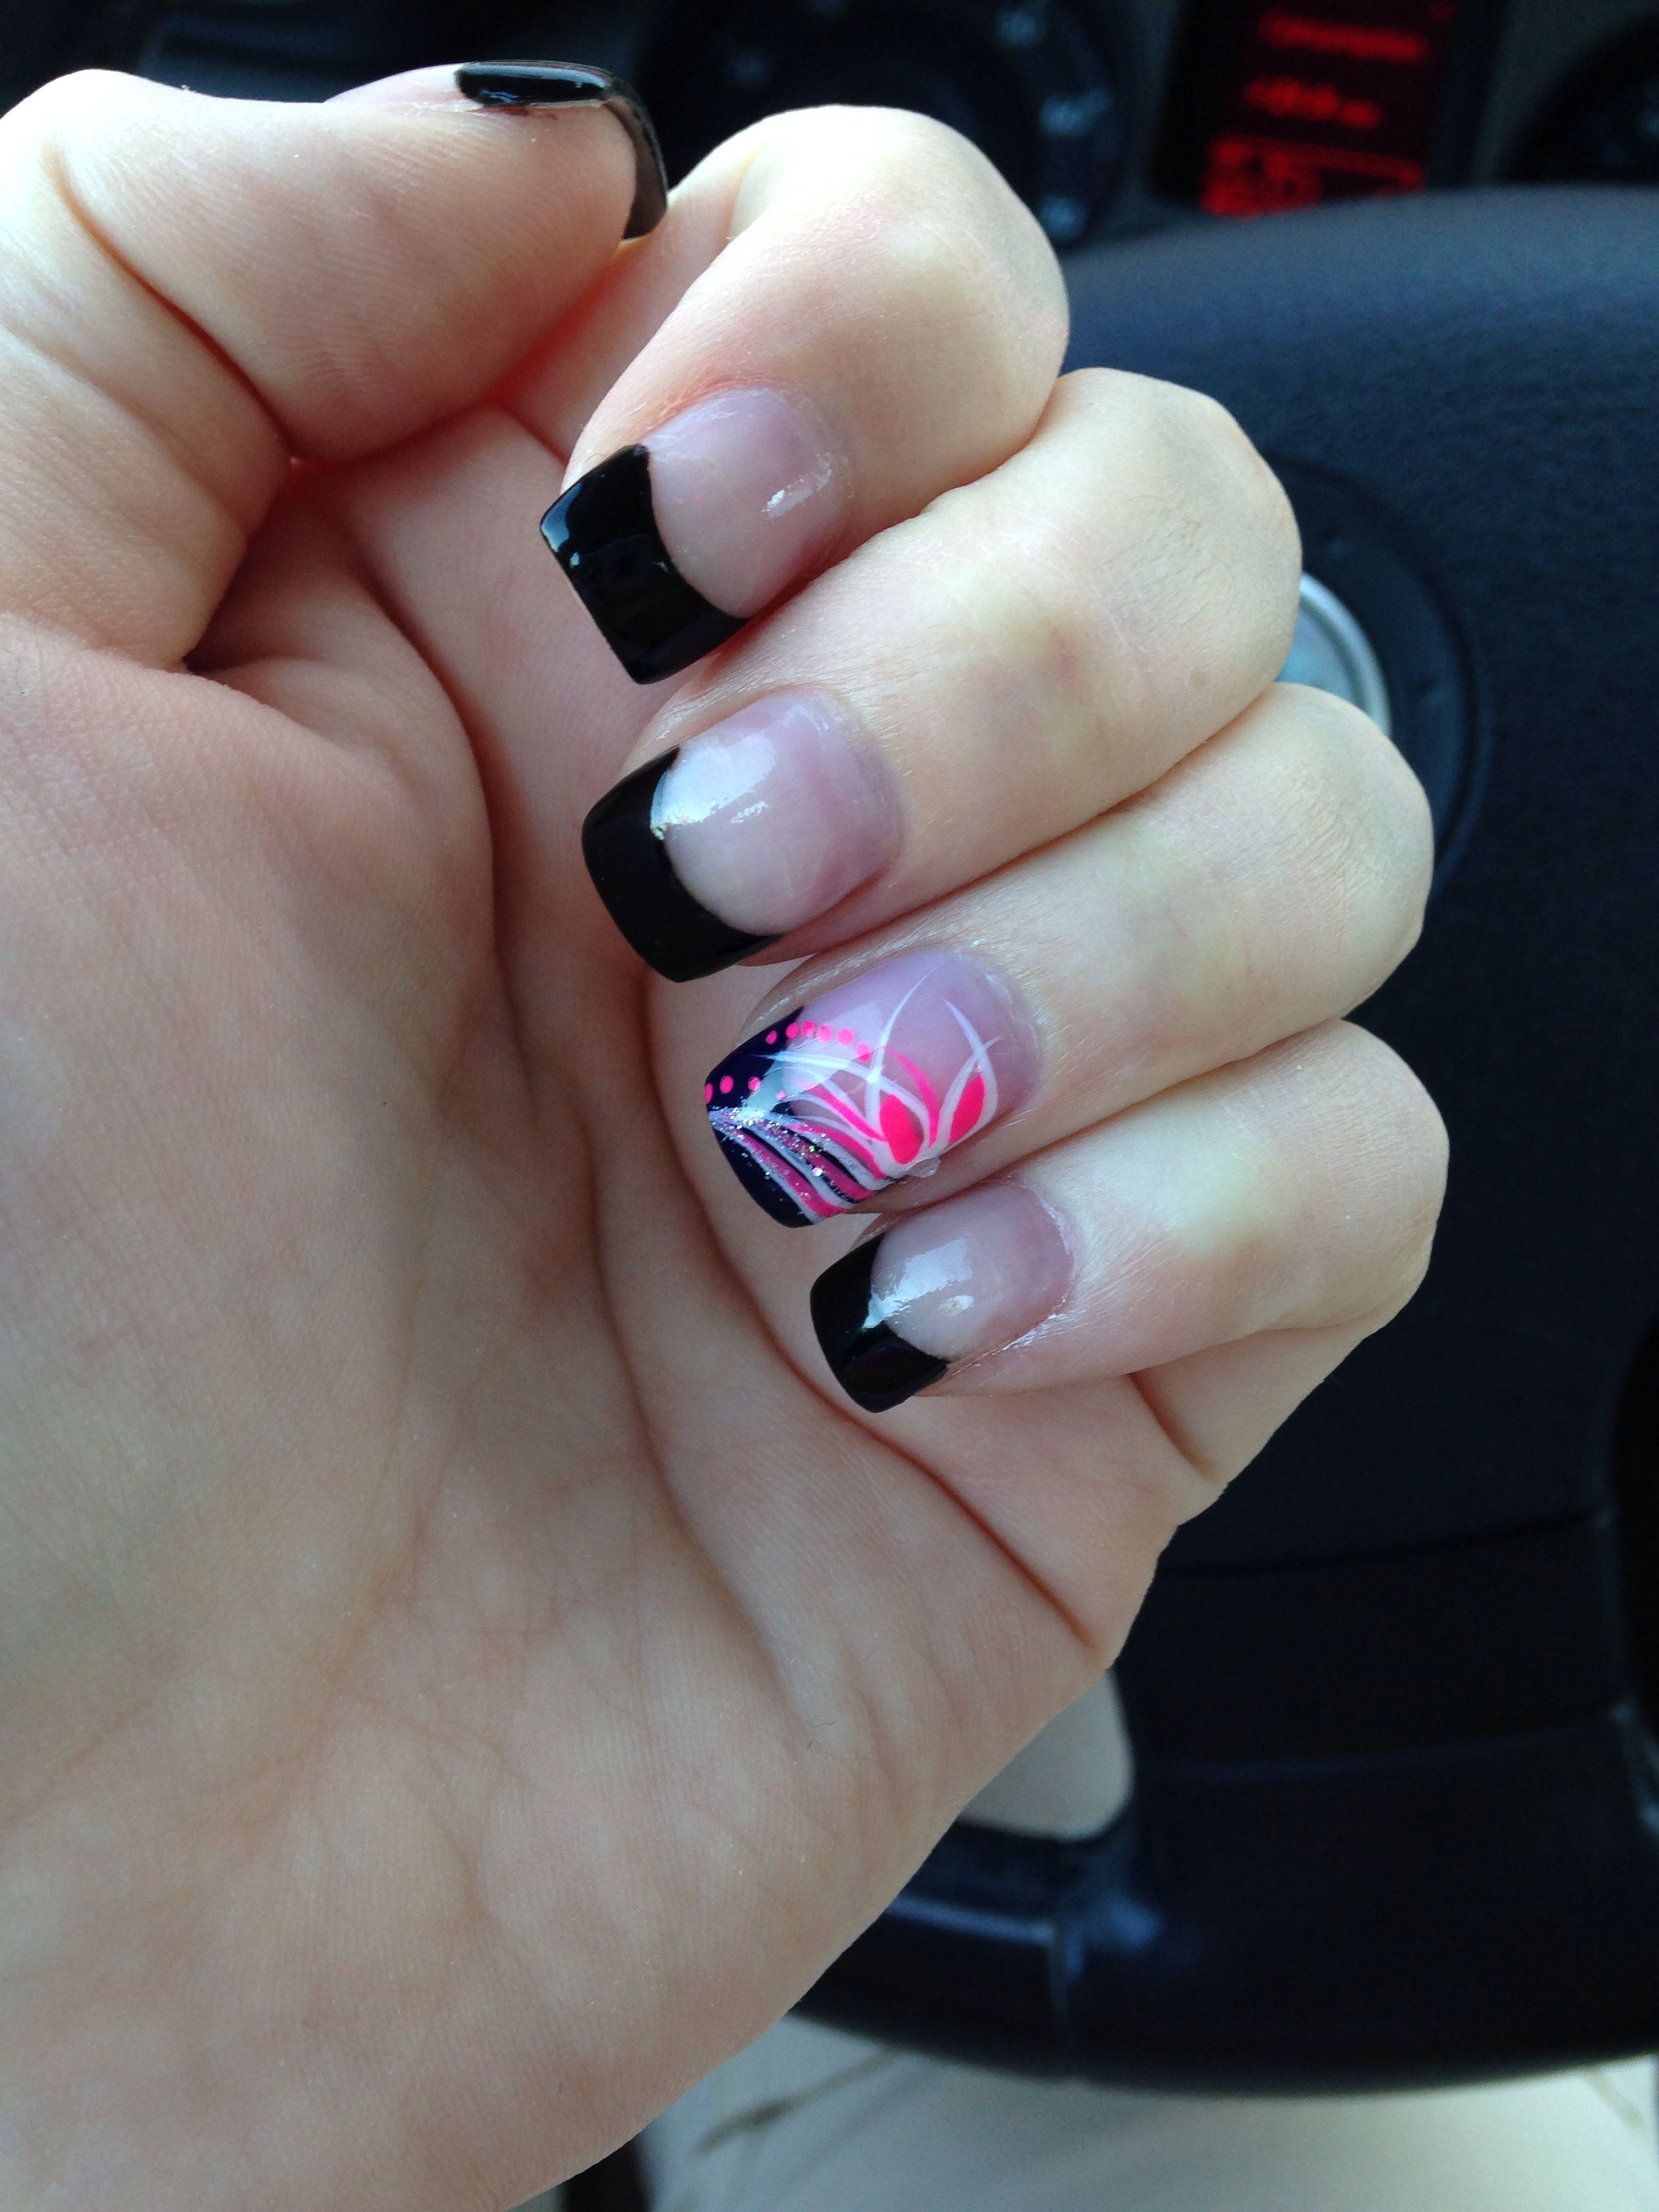 Black Tip French Manicure With Pink Accent Design Manicure Nails